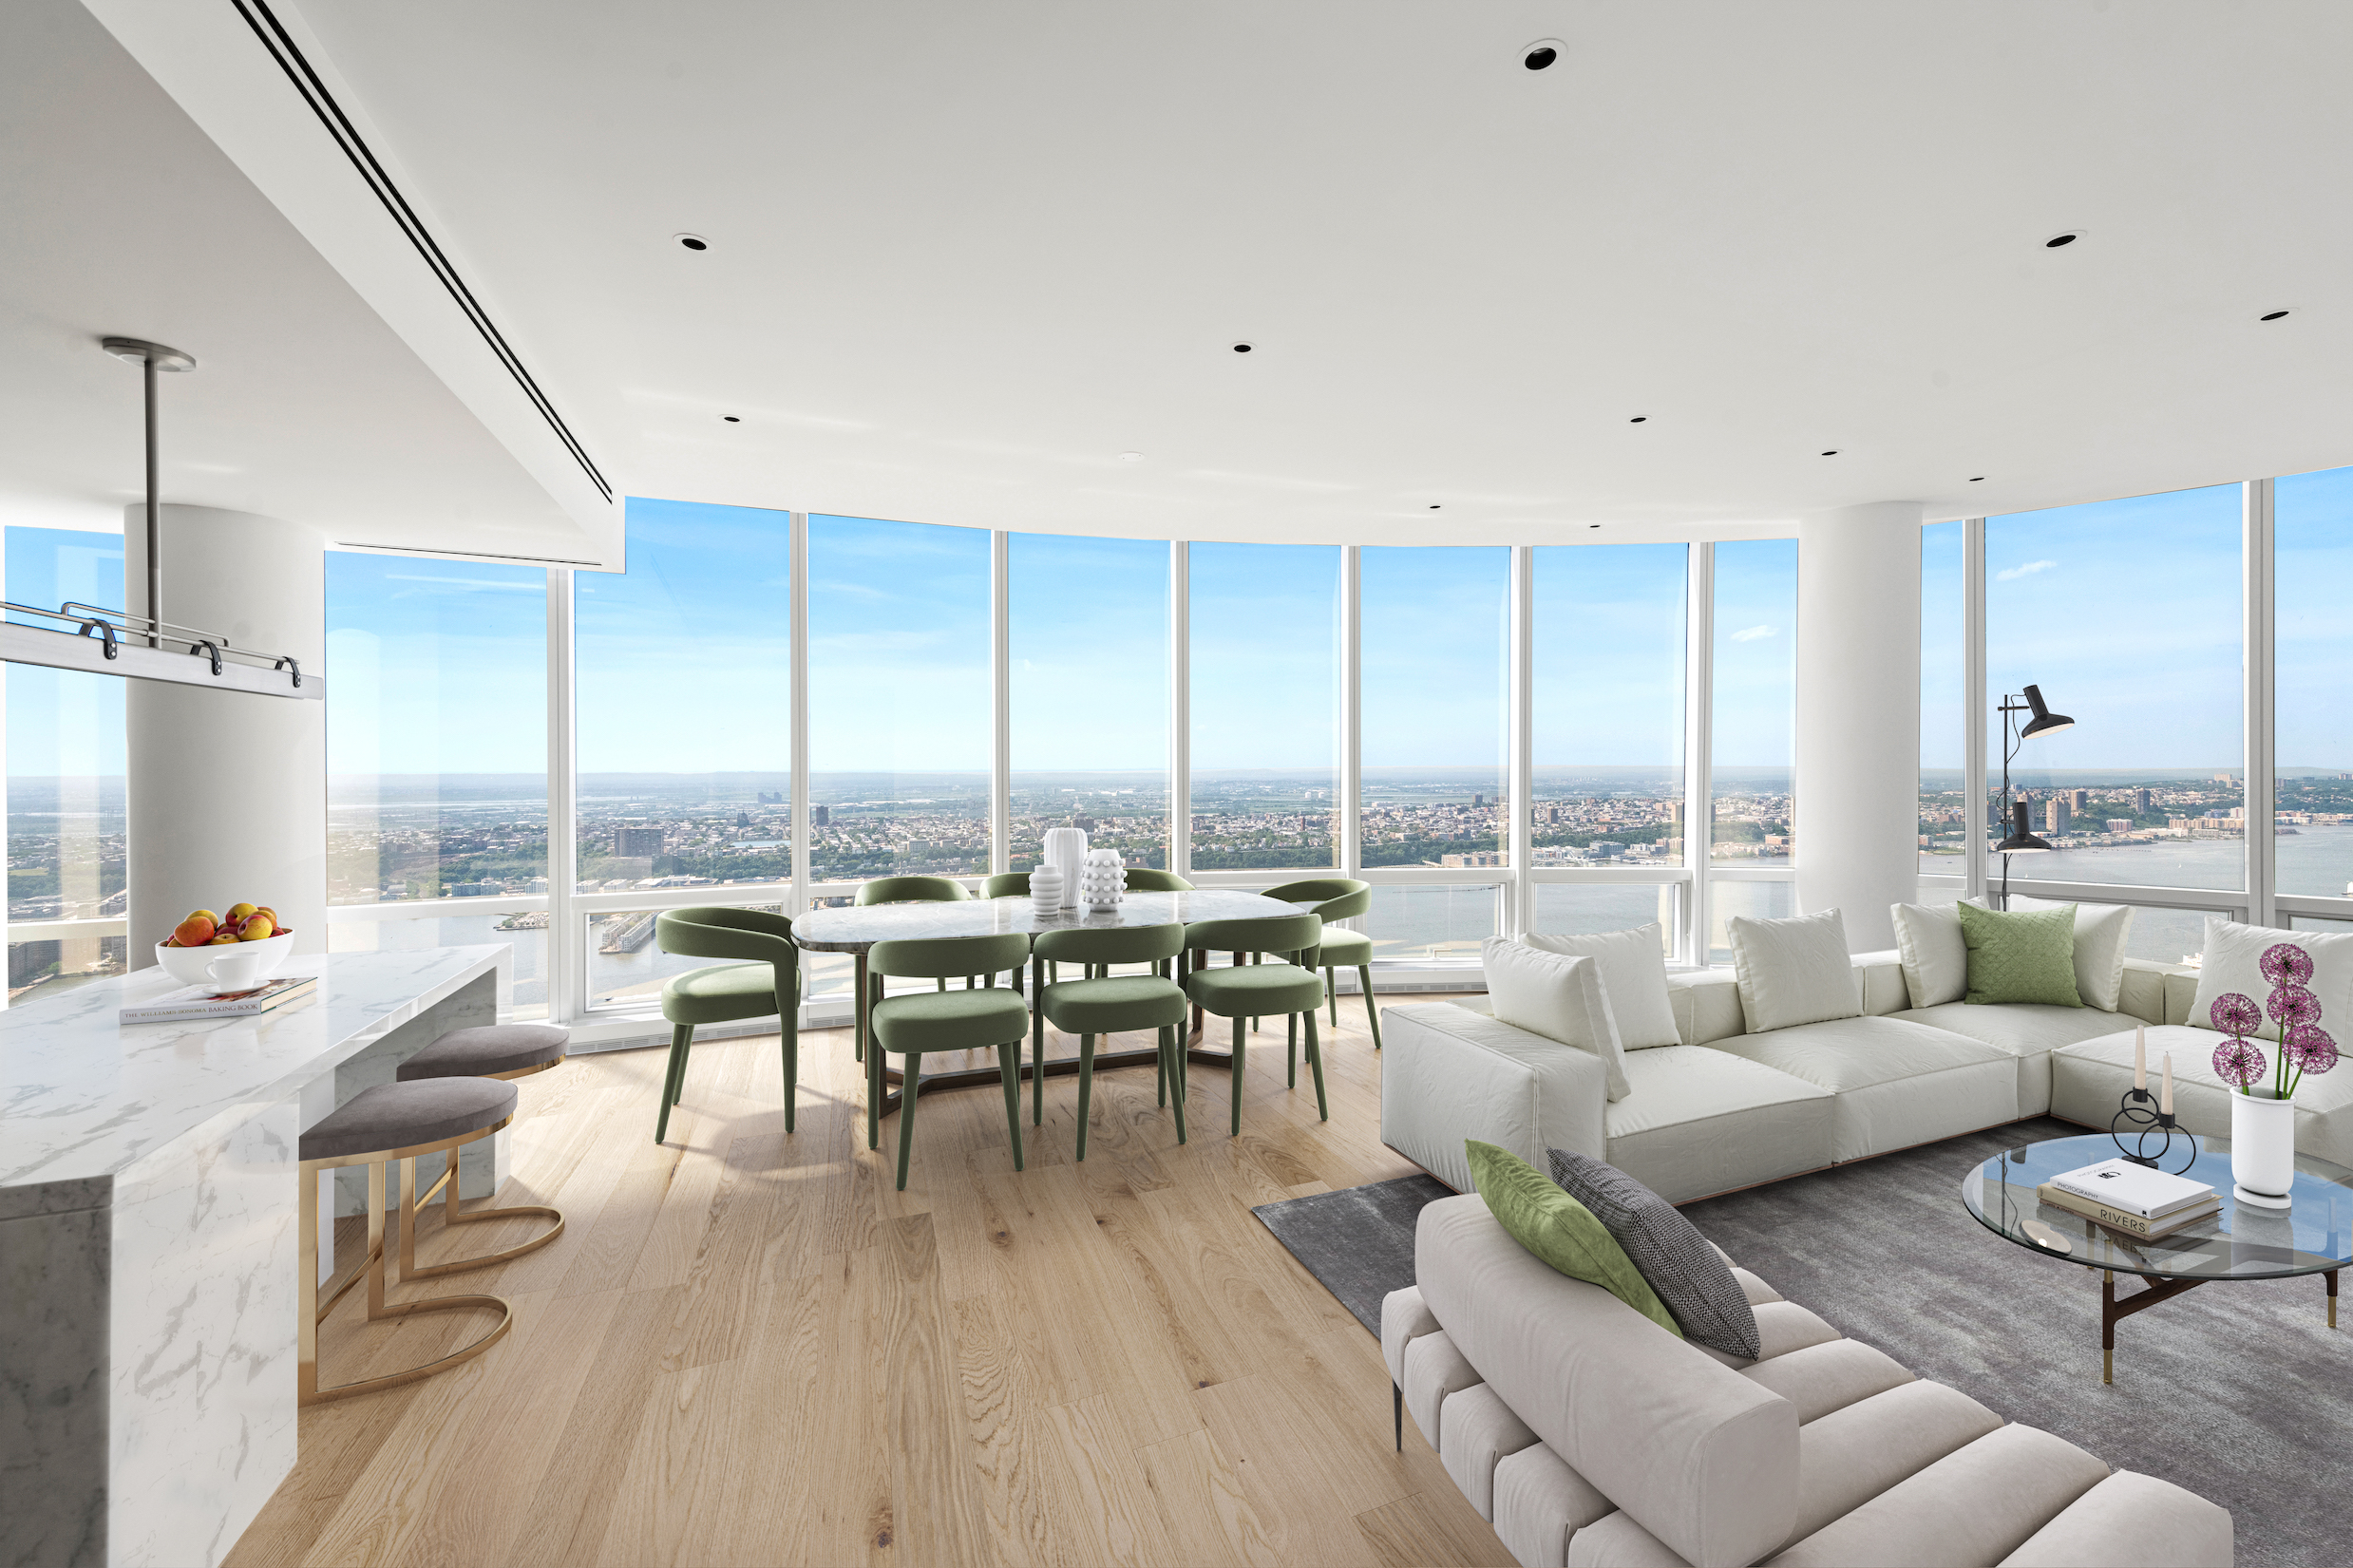 Welcome to this sublime corner condo perched high above the Hudson River in the ultra-luxurious Hudson Yards neighborhood, a stunning 3-bedroom, 3.5-bathroom home wrapped in floor-to-ceiling windows and saturated with natural light.  Highlights of this 2,617 sq. ft. apartment include beautiful hardwood floors, northern and western exposure, a side-by-side washer/dryer, soaring ceilings over 10 ft. in height, and expansive views of the Hudson River and Manhattan.  A grand foyer adorned with a powder room and a pair of coat closets leads into an expansive open-concept living room, dining room, and kitchen overlooking the river. The kitchen is equipped with an eat-in waterfall island, sleek marble countertops and backsplashes, custom cabinets, and a suite of fully-integrated appliances from Miele.     The primary bedroom has couples' walk-in closets, a supplementary linen closet, and a windowed en-suite bathroom with double sinks, a walk-in rain shower, and a deep soaking tub. The second and third bedrooms each have large reach-in closets and full en-suite bathrooms with chic tiles and custom vanities.   Fifteen Hudson Yards is a brand new residential building located in the exclusive Hudson Yards neighborhood. Residents have access to more than 40,000 sq. ft. of amenities that include a 75-ft long swimming pool, a state-of-the-art fitness center by The Wright Fit, a private yoga studio, spa suites, a beauty bar, private dining suites, a lounge, a screening room, a business center, a golf club, and an atelier. There is a 24-hour attended lobby and concierge service. The building has easy access to The High Line and The Shed and is surrounded by a number of luxury shopping, dining, and entertainment options. Pets are welcome.